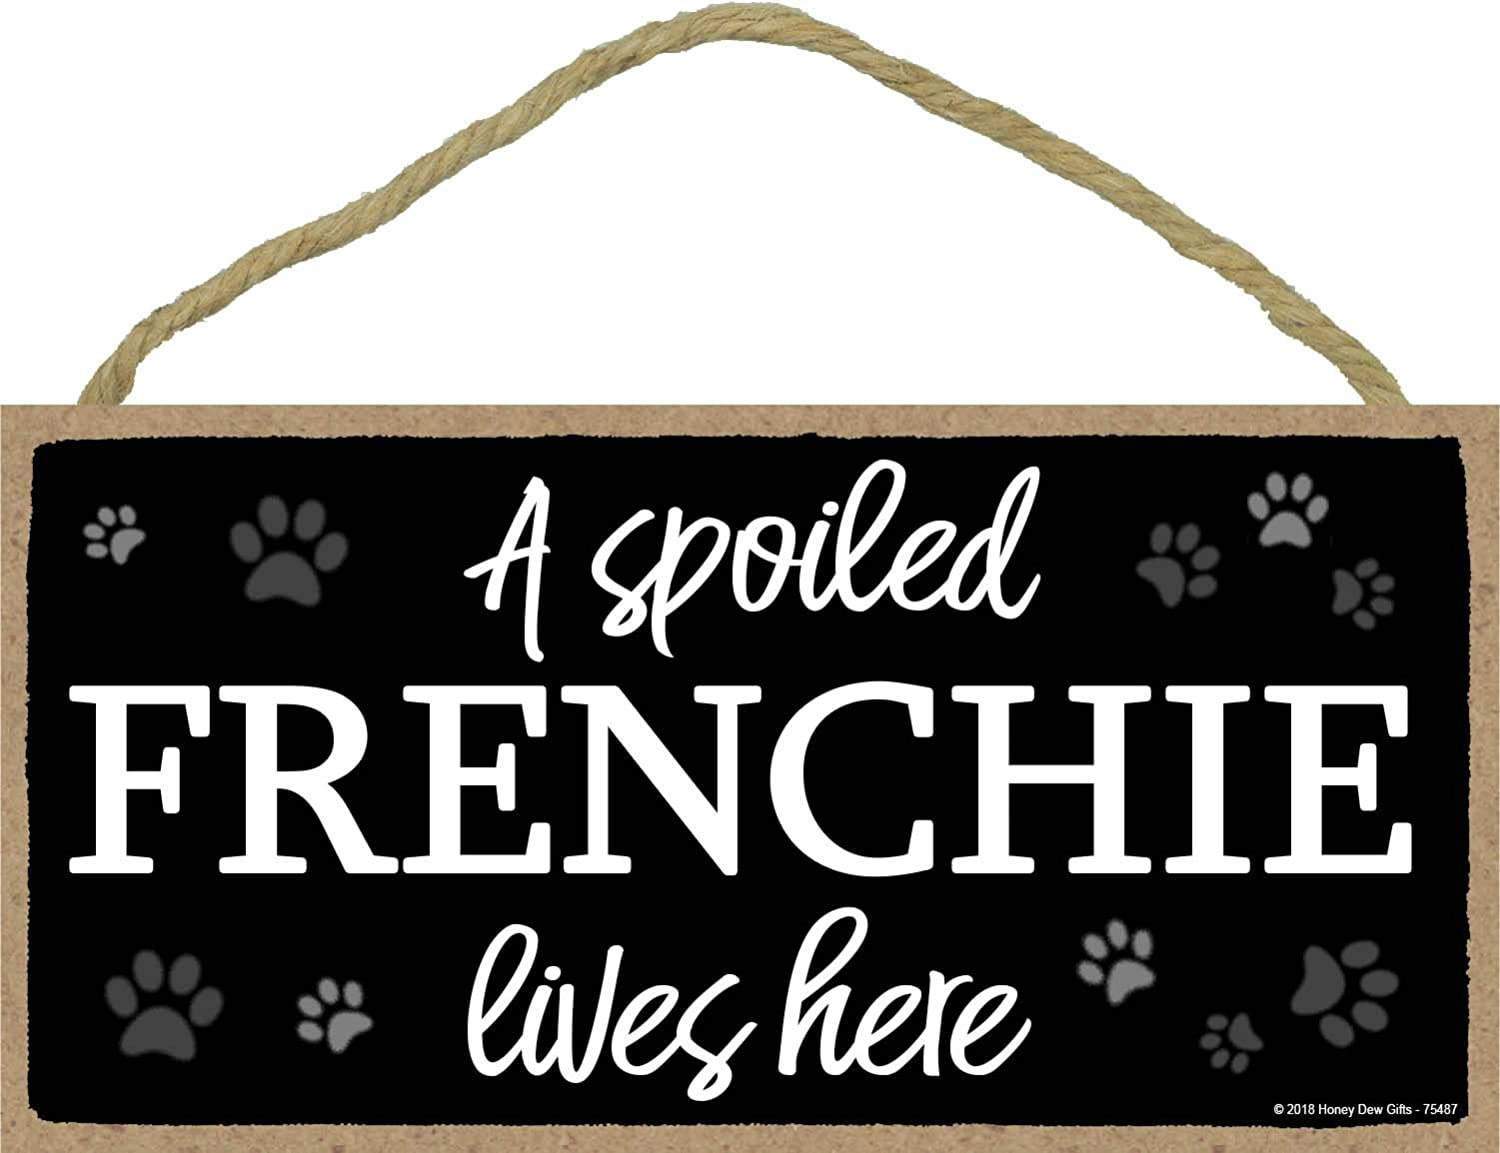 A Spoiled Frenchie Lives Here - 5 x 10 inch Hanging Wood Sign Home Decor, Wall Art, French Bulldog Gifts